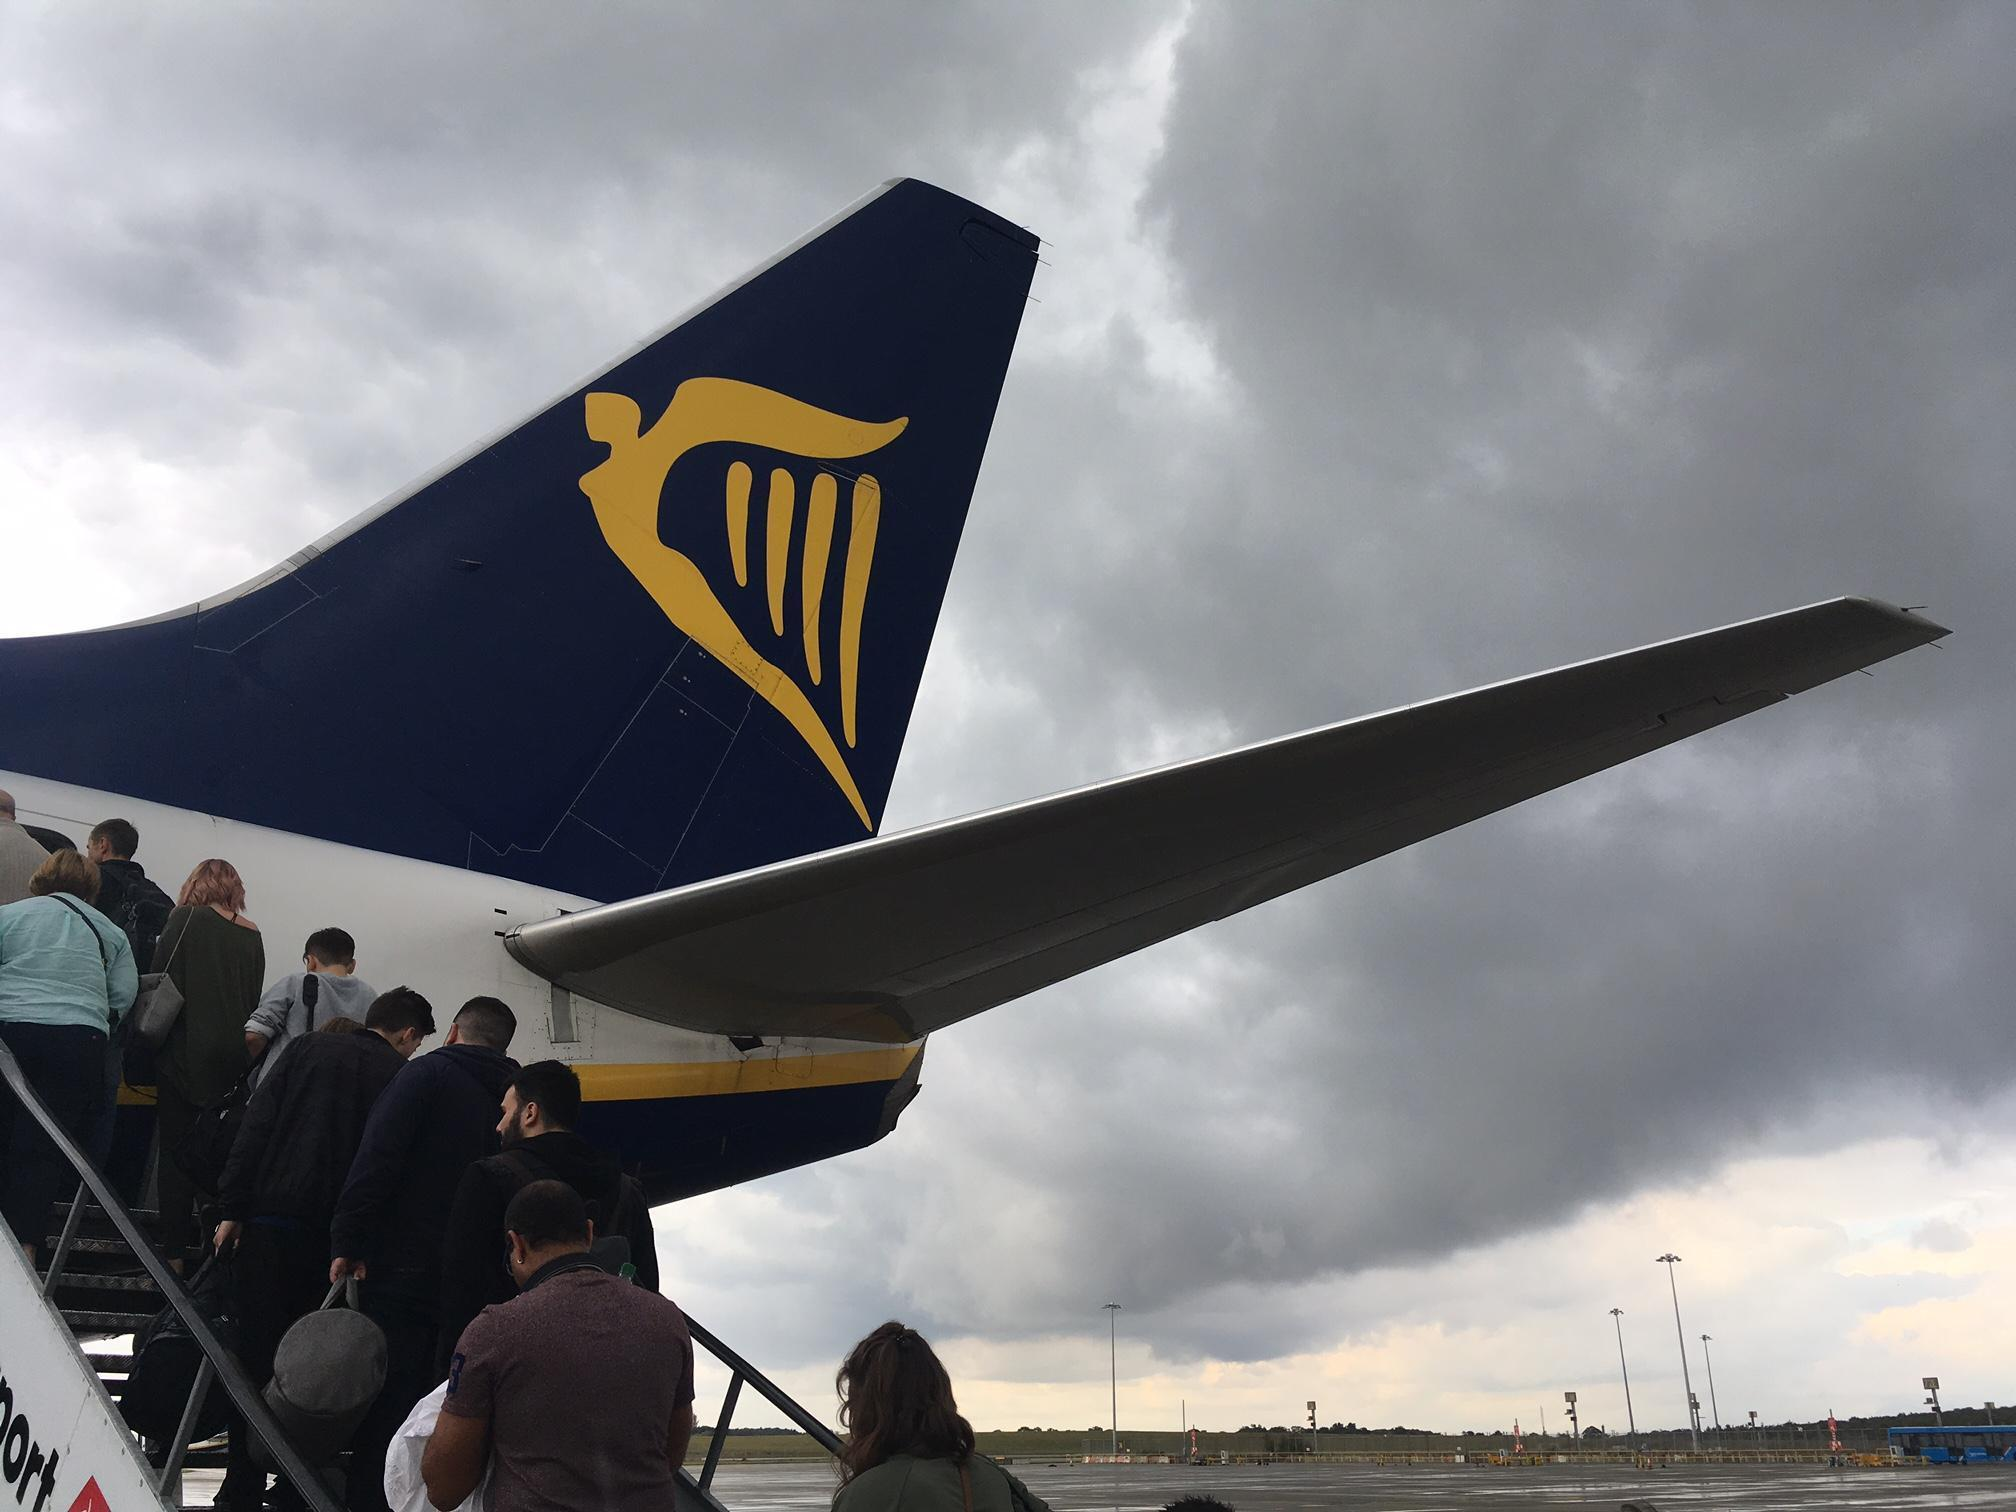 Boeing, Boeing, gone? Why Ryanair will fly through this unprecedented turbulence